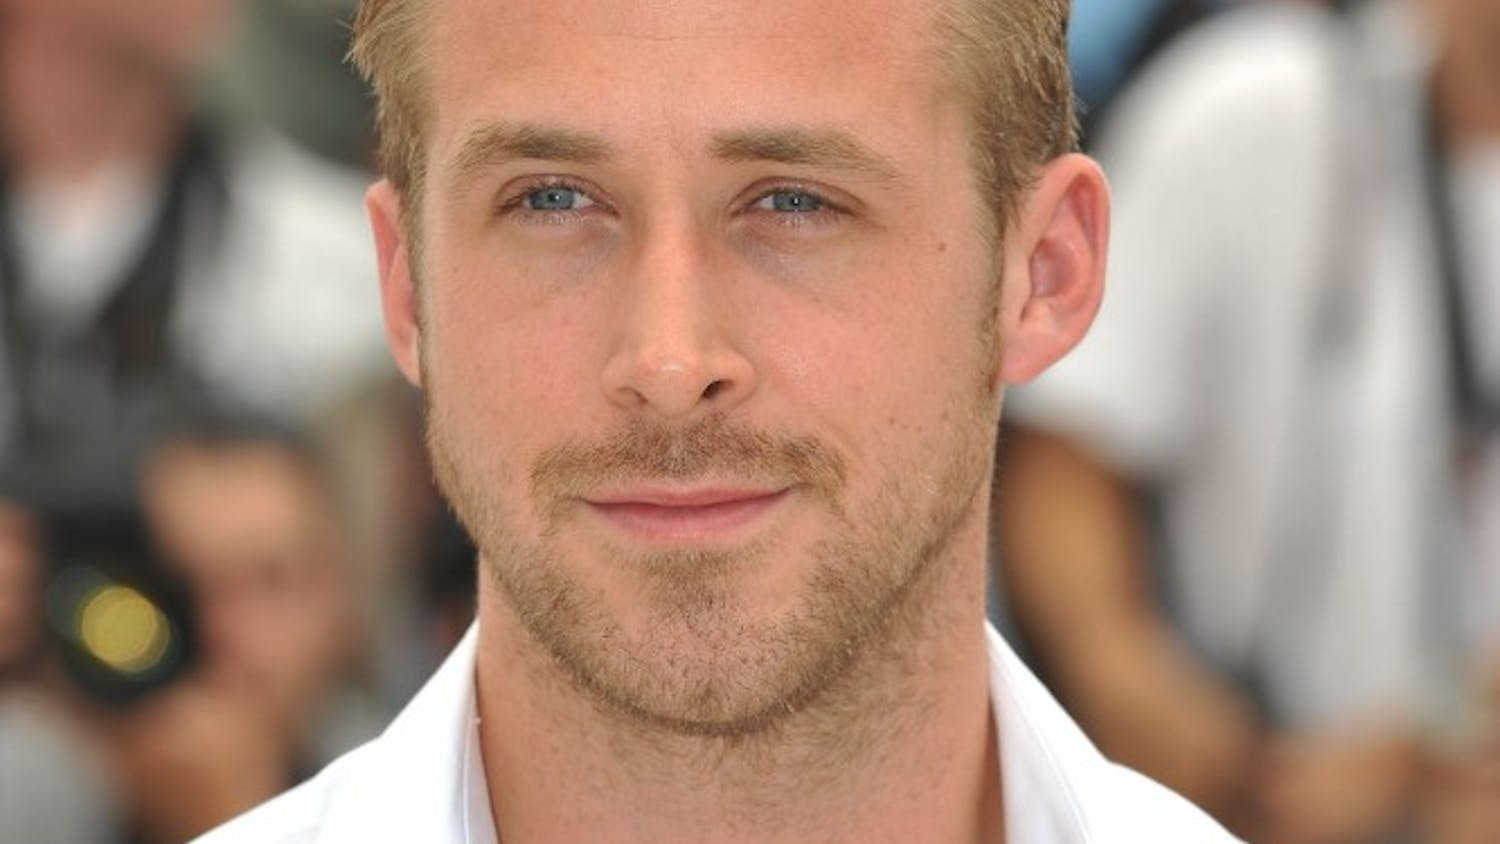 """Ryan Gosling attending the """"Blue Valentine"""" photocall during the 63rd Cannes Film Festival in Cannes, France on May 18, 2010. (Hahn-Nebinger-Orban/ABACAPRESS.COM/MCT)"""